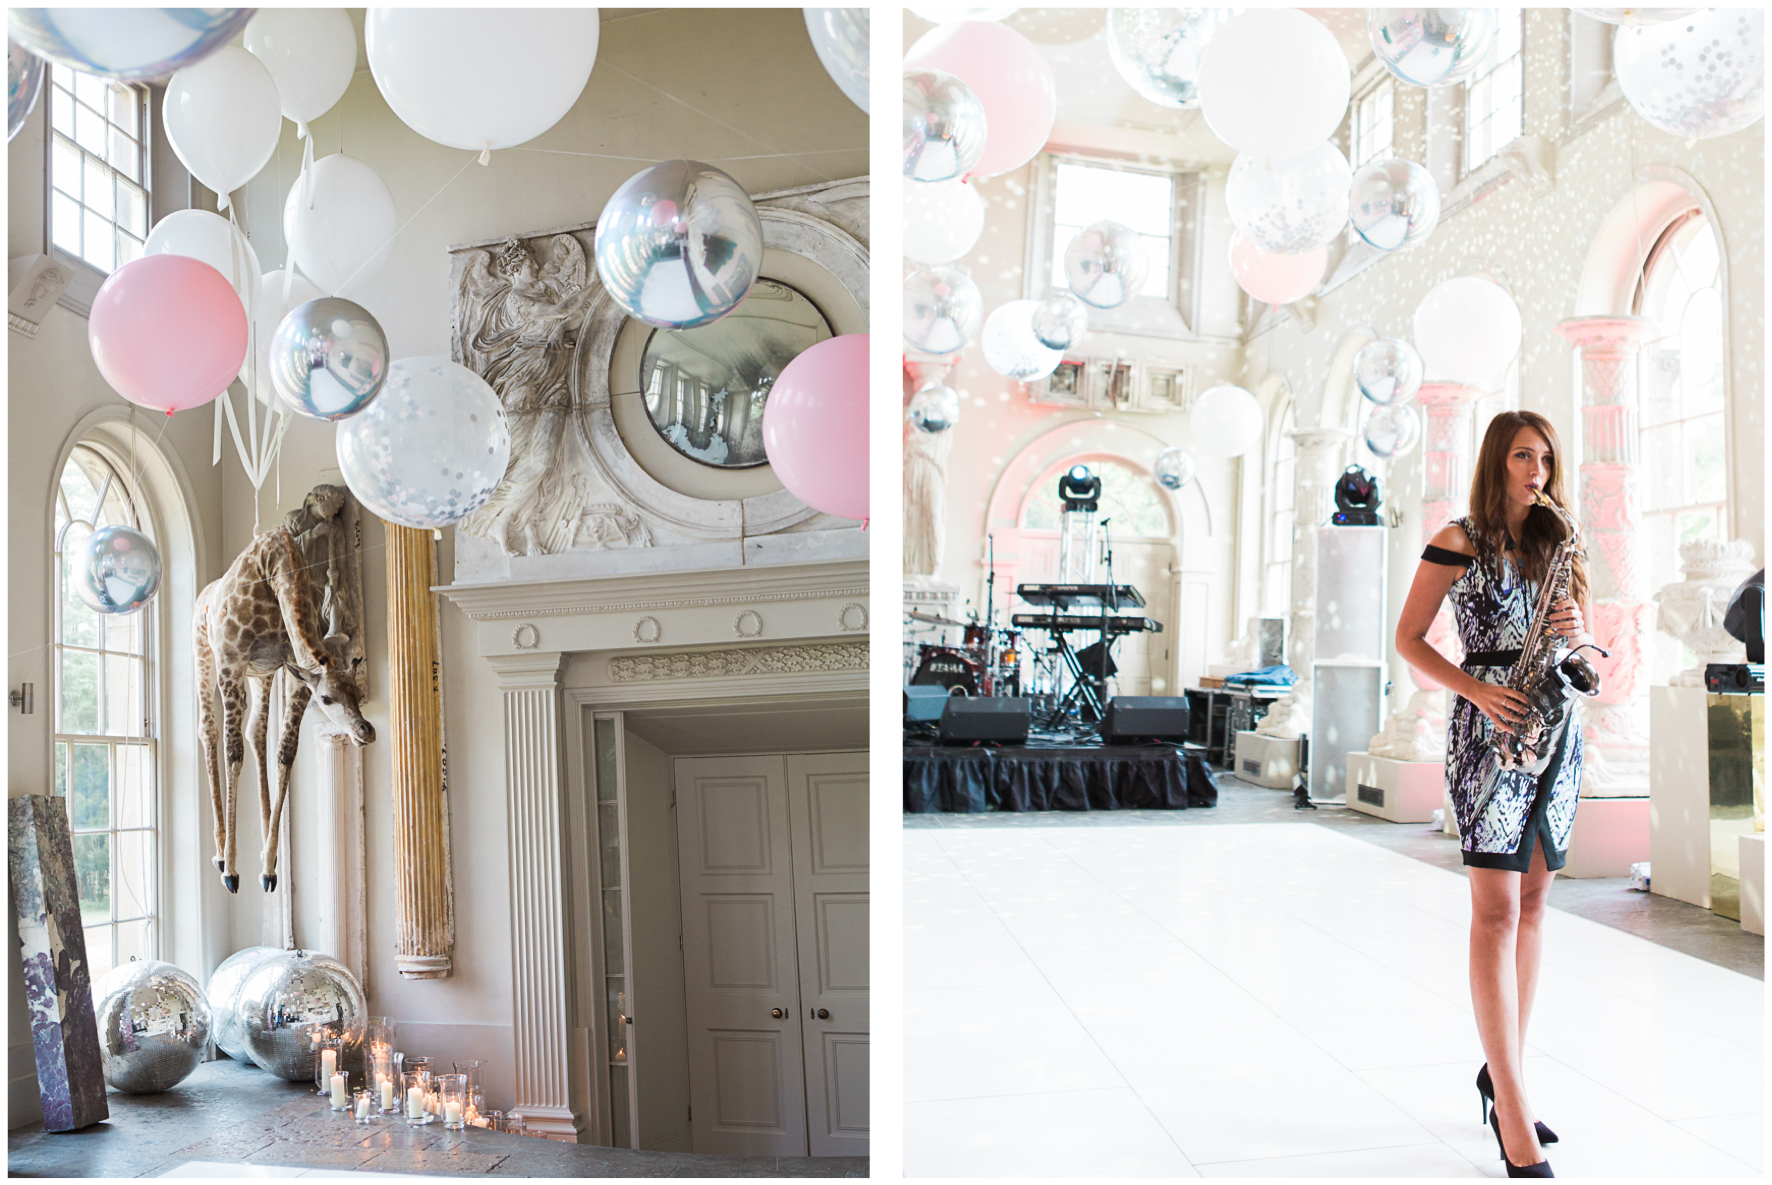 Aynhoe Park orangery, balloon covered ceiling, Bubblegum Balloons, saxophonist